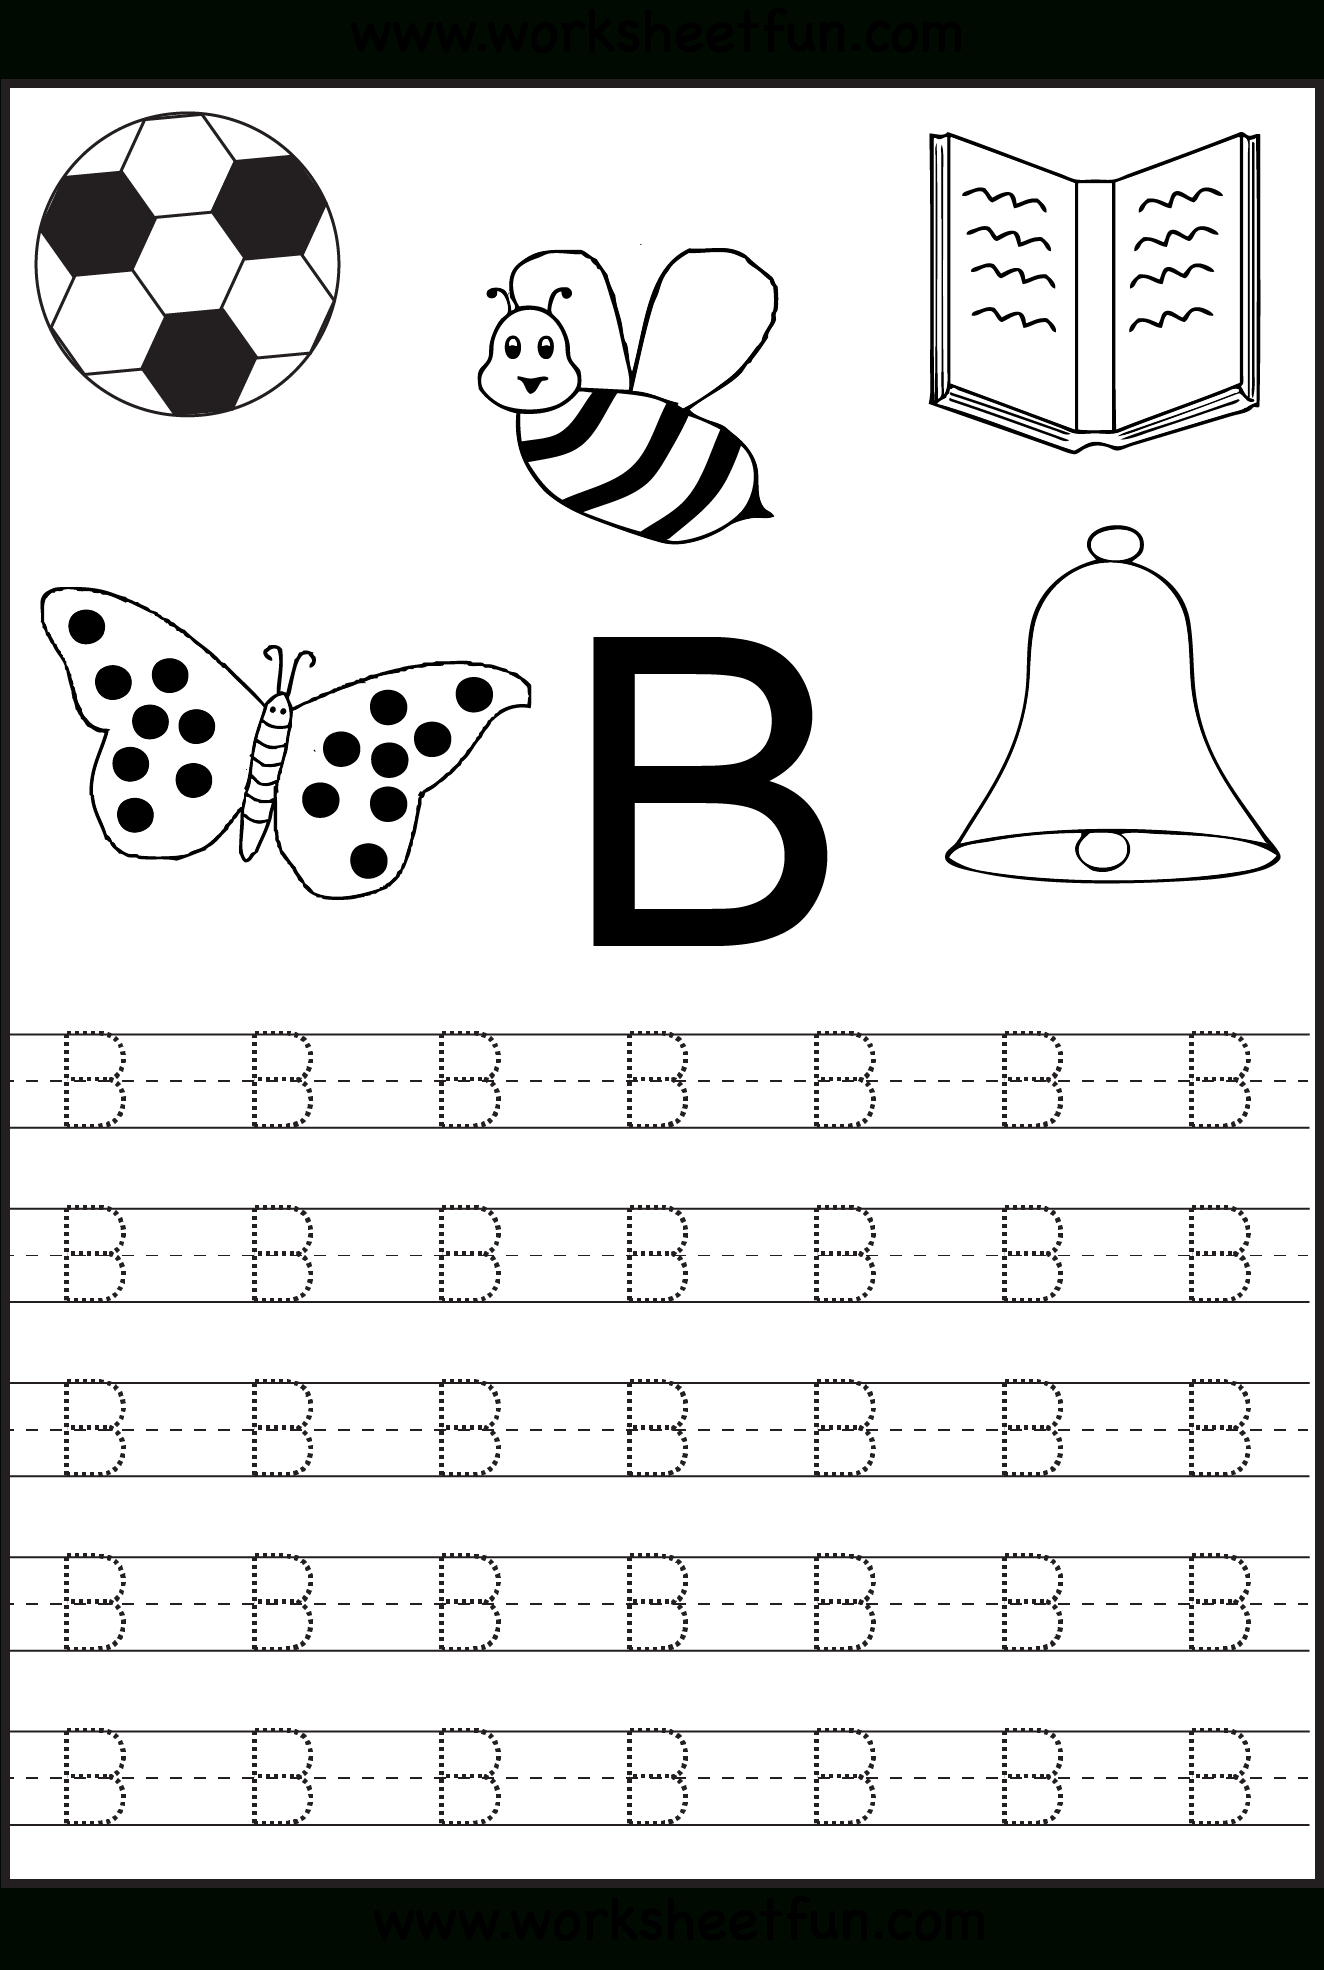 Free Printable Letter Tracing Worksheets For Kindergarten regarding Tracing Letter A Worksheets For Preschool